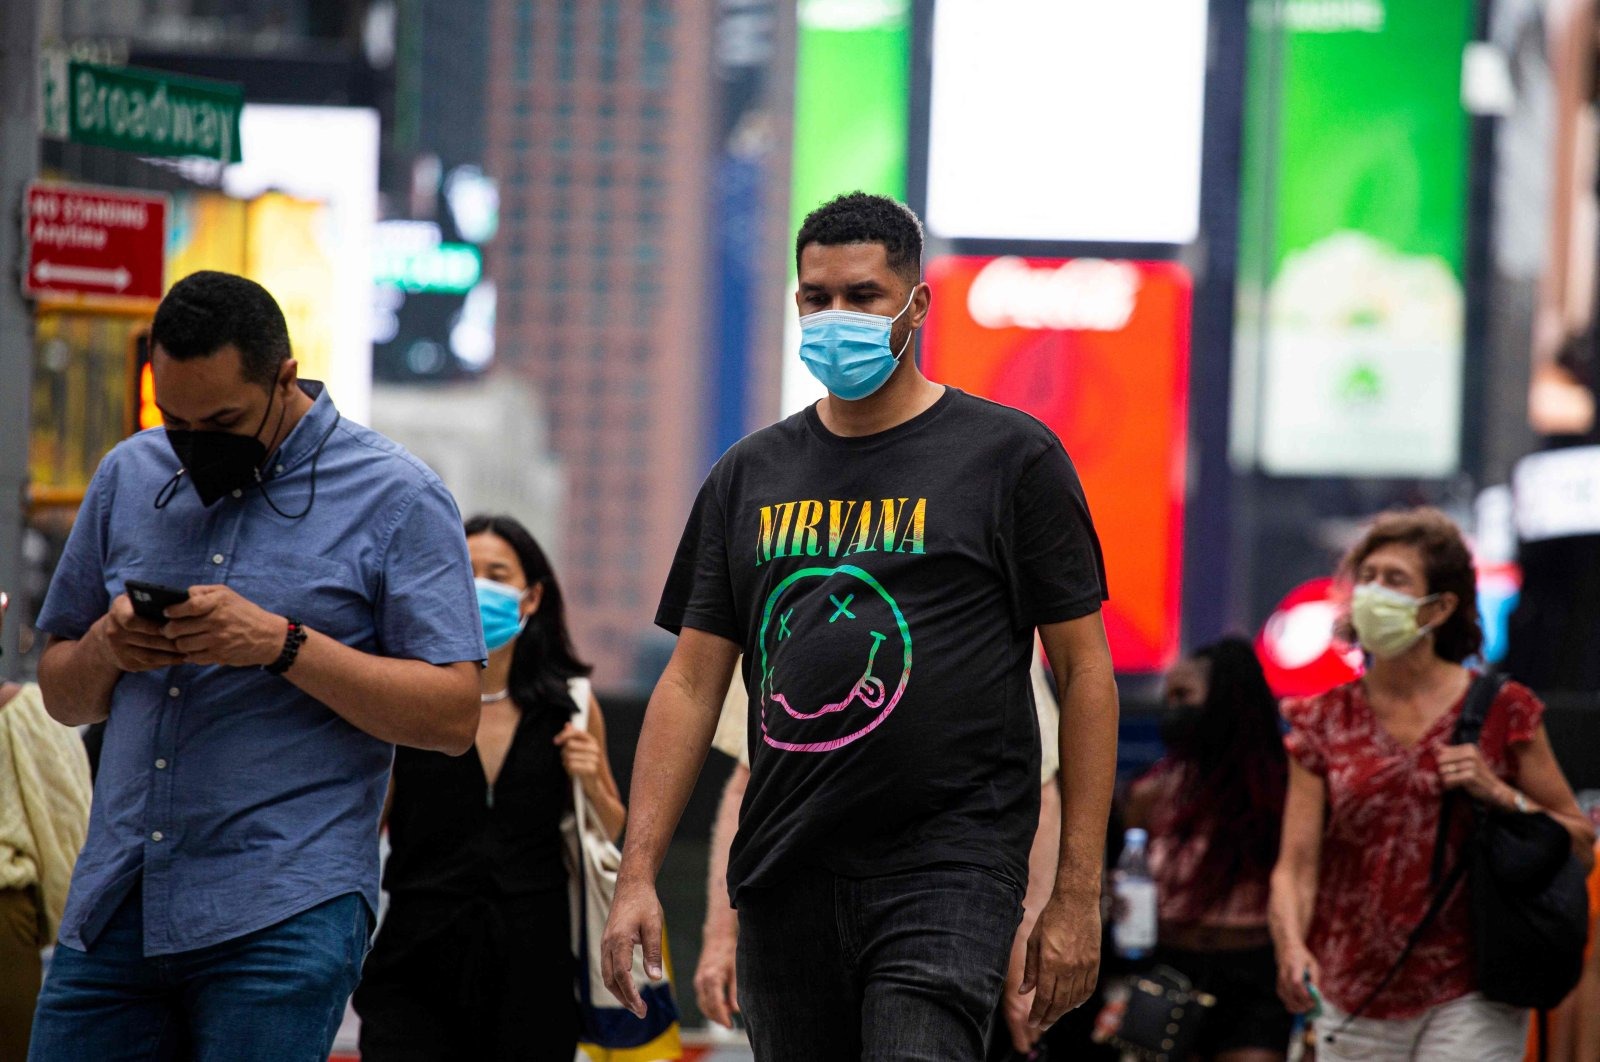 People walk by wearing face masks to combat COVID-19, in Midtown Manhattan, New York, U.S., July 29, 2021. (AFP Photo)